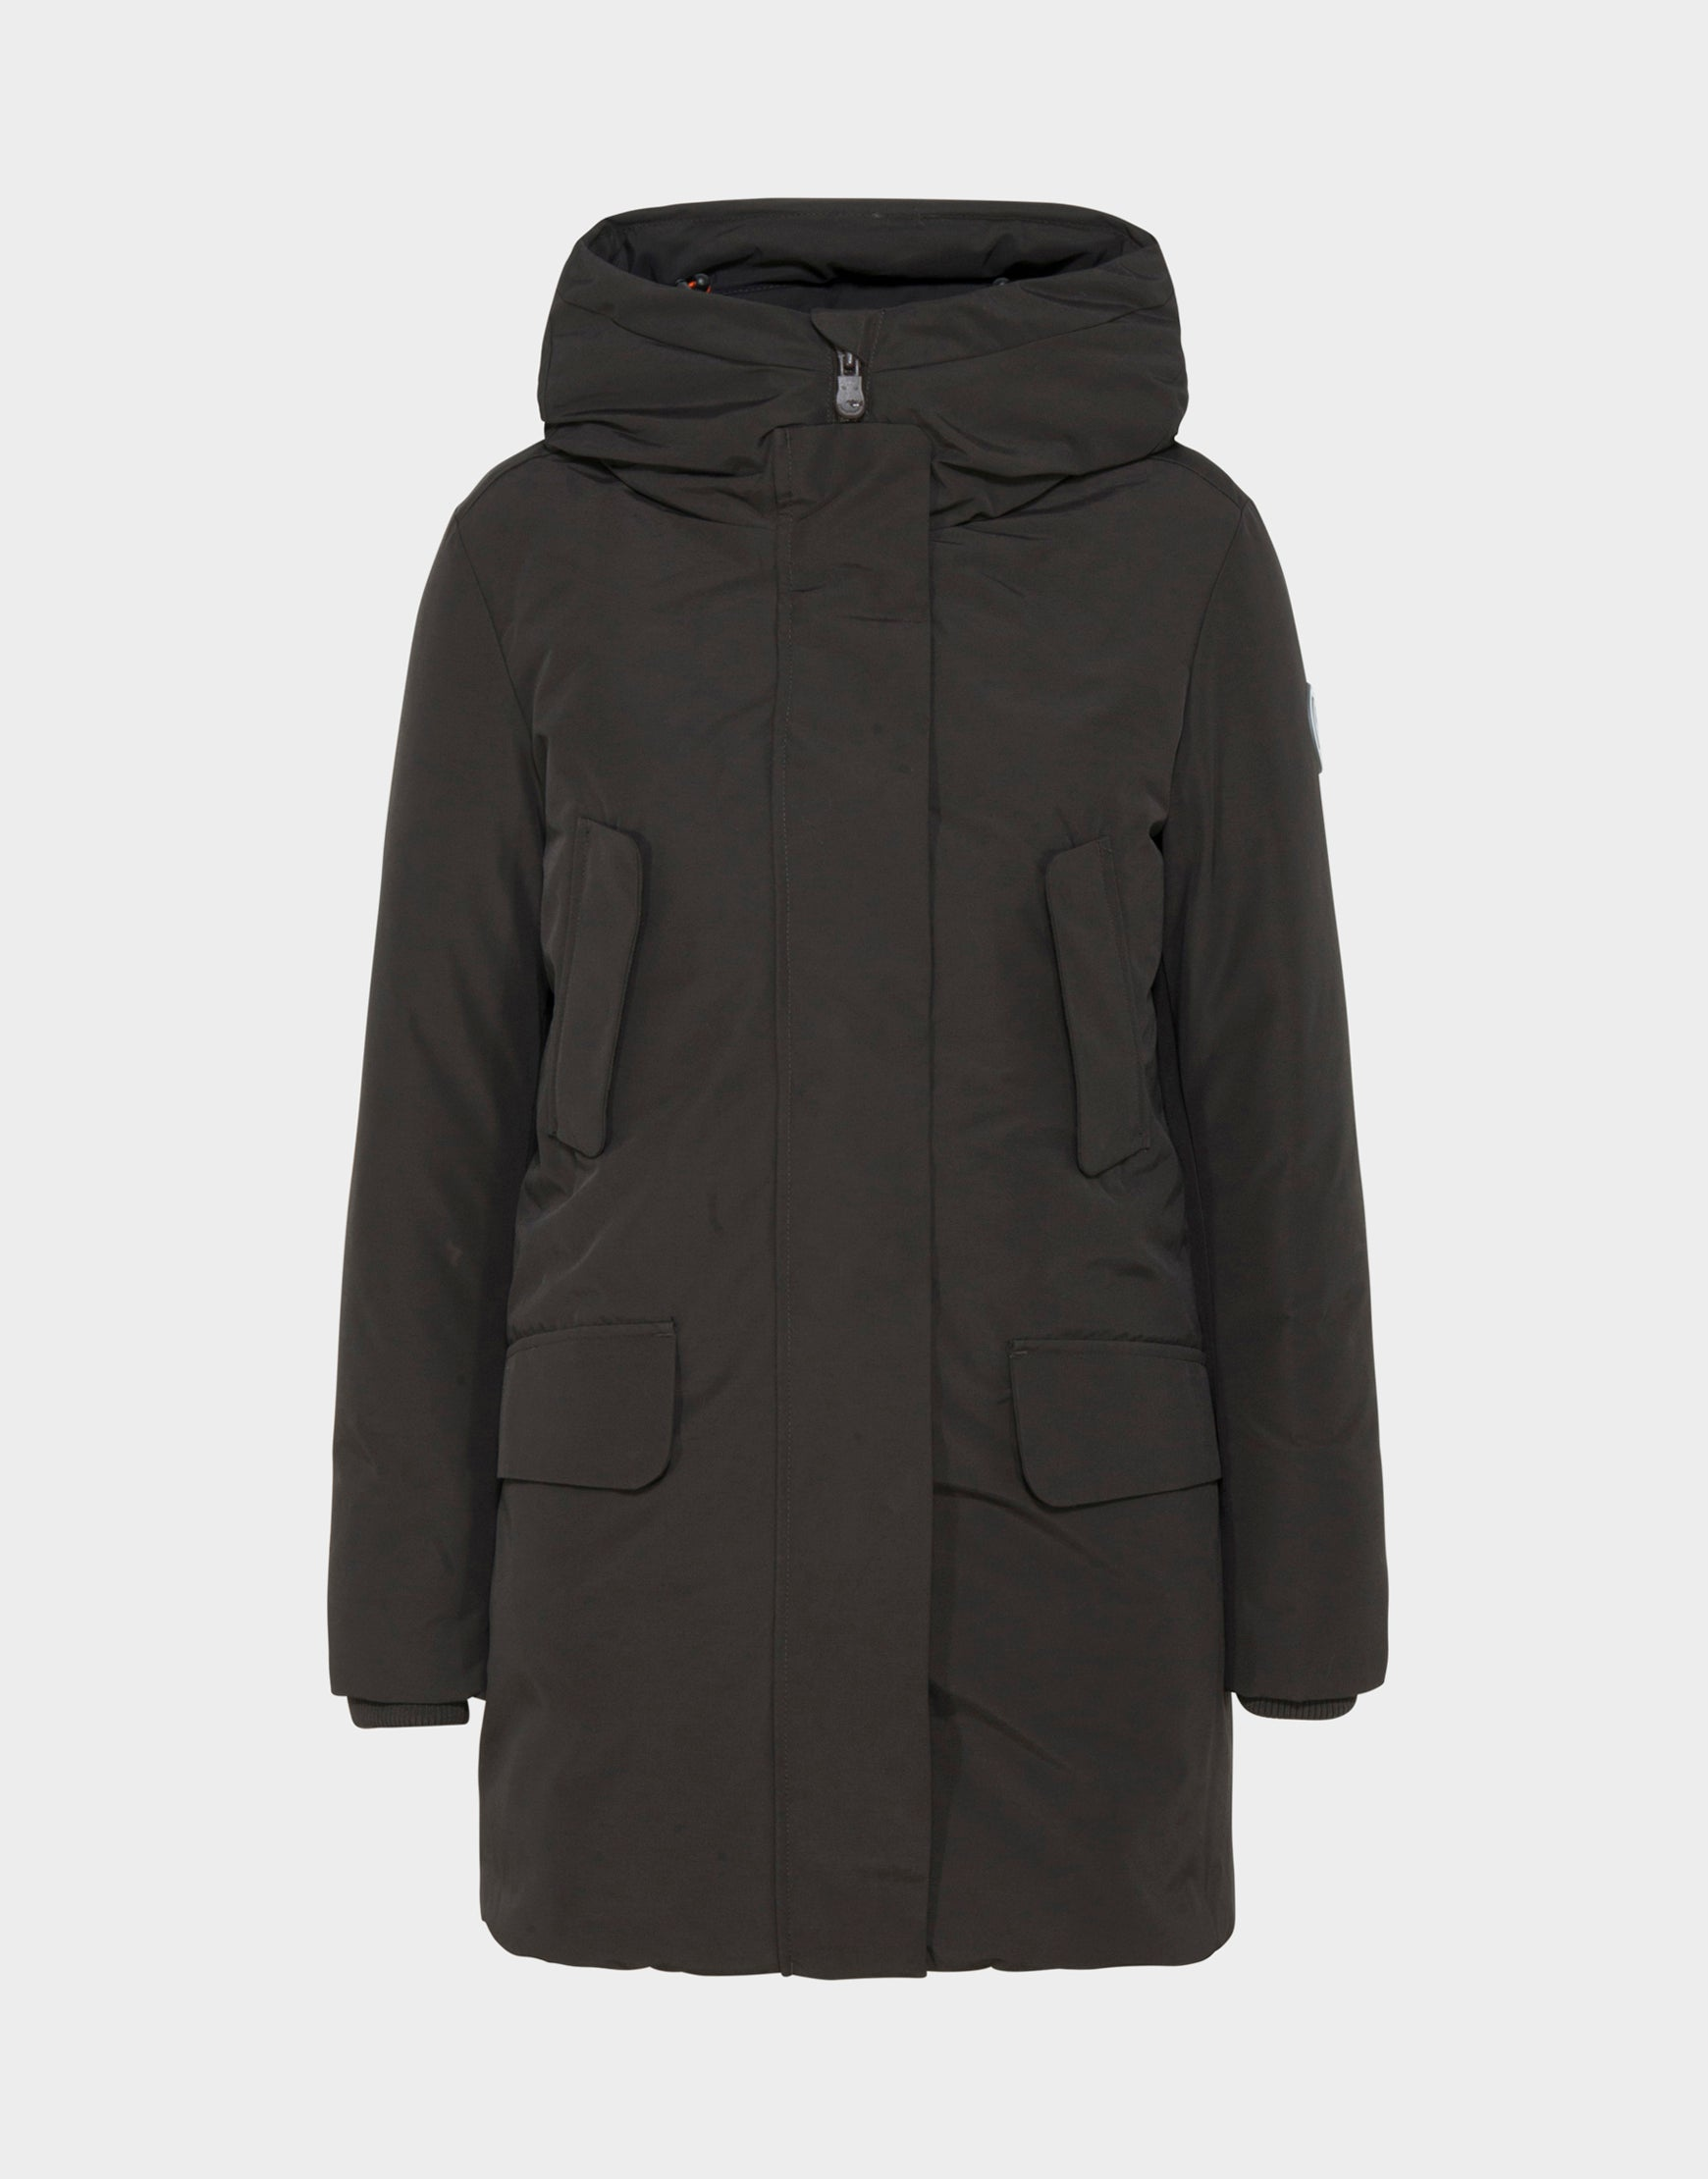 Womens COPY Winter Hooded Parka in Brown Black